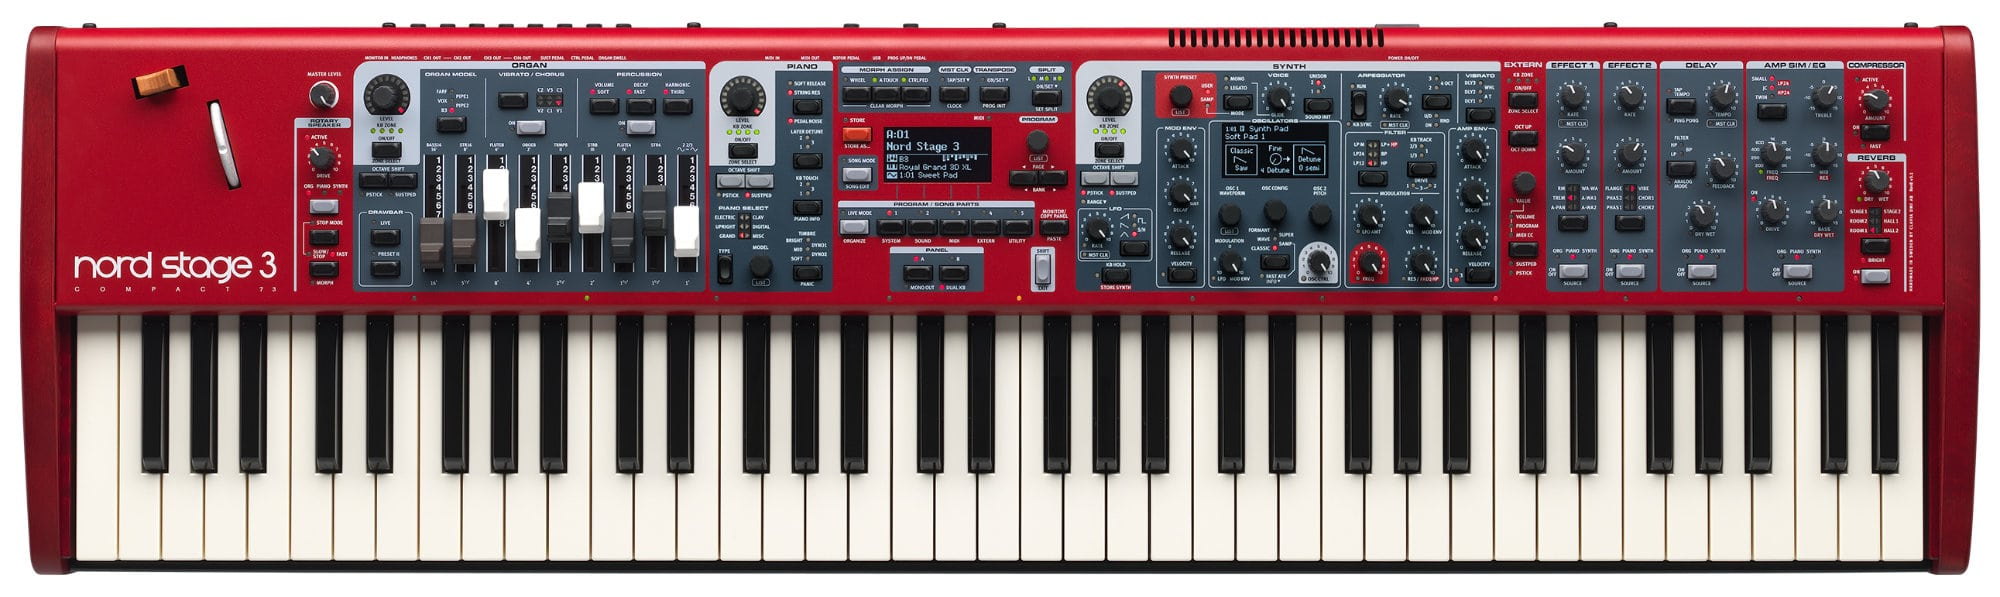 Stagepianos - Clavia Nord Stage 3 Compact - Onlineshop Musikhaus Kirstein